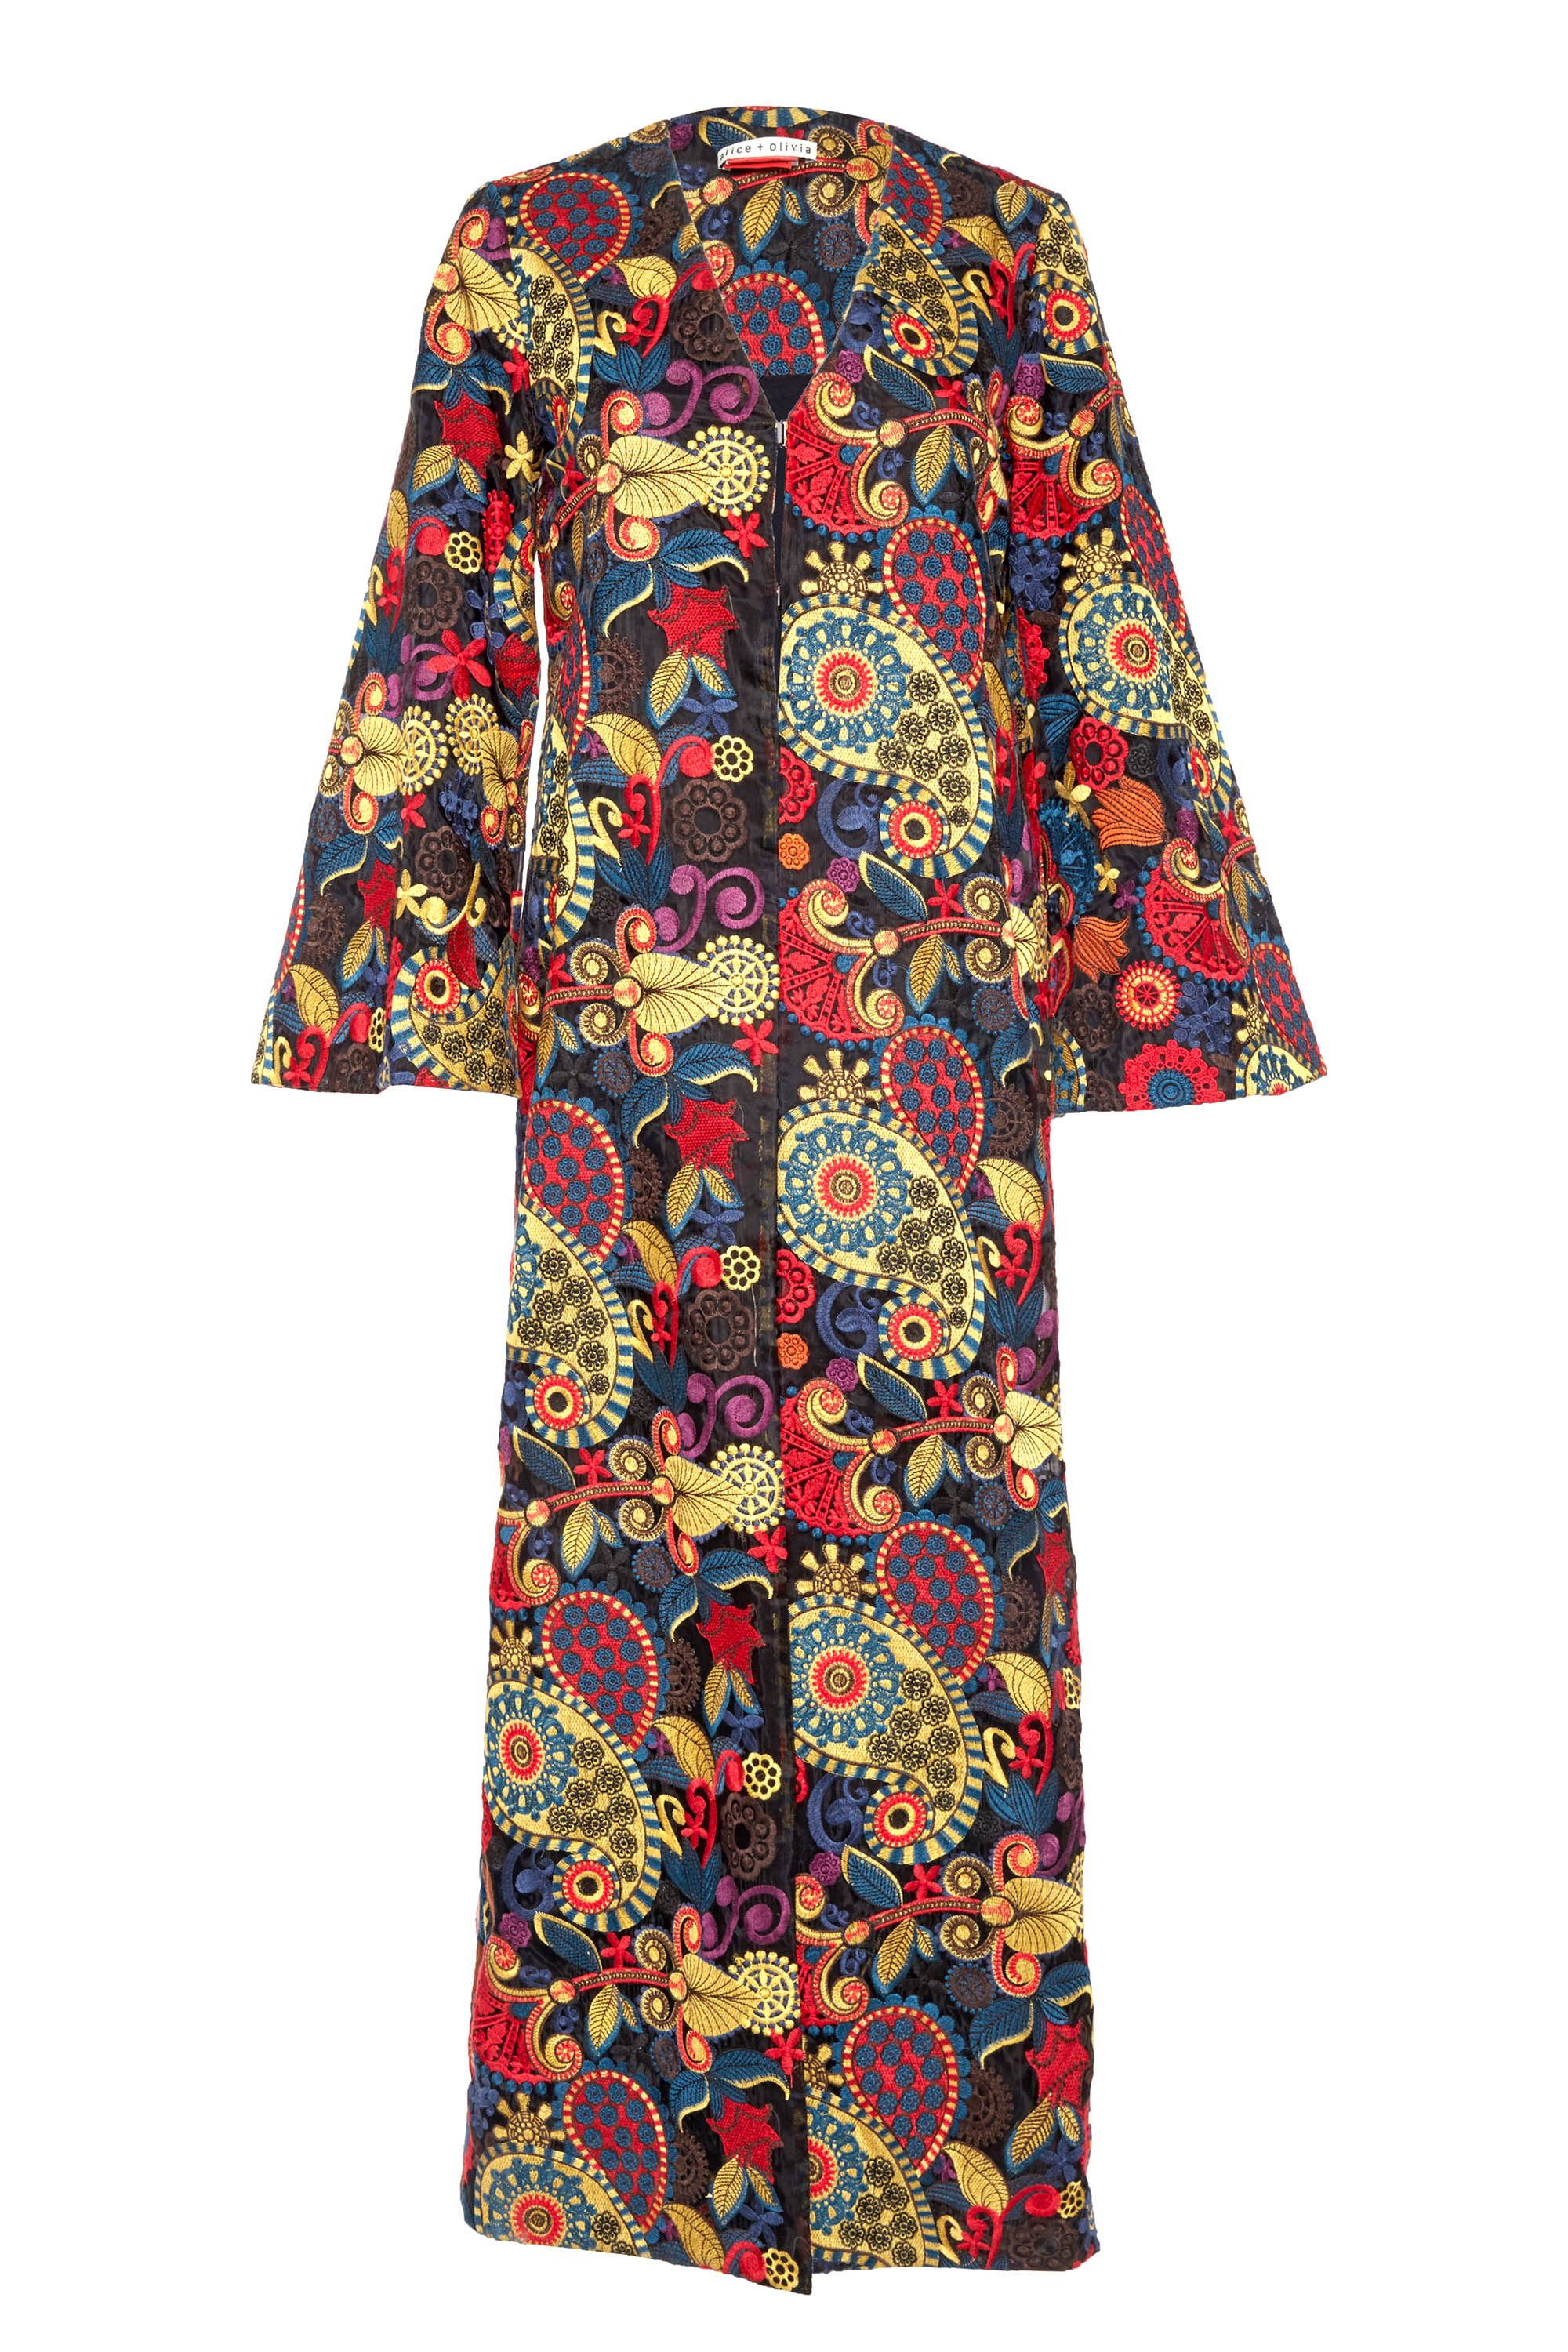 "<p>Alice and Olivia Stara Open Frong Kaftan, $795; <a href=""https://www.aliceandolivia.com/stara-open-front-kaftan.html"" target=""_blank"">aliceandolivia.com</a></p>"